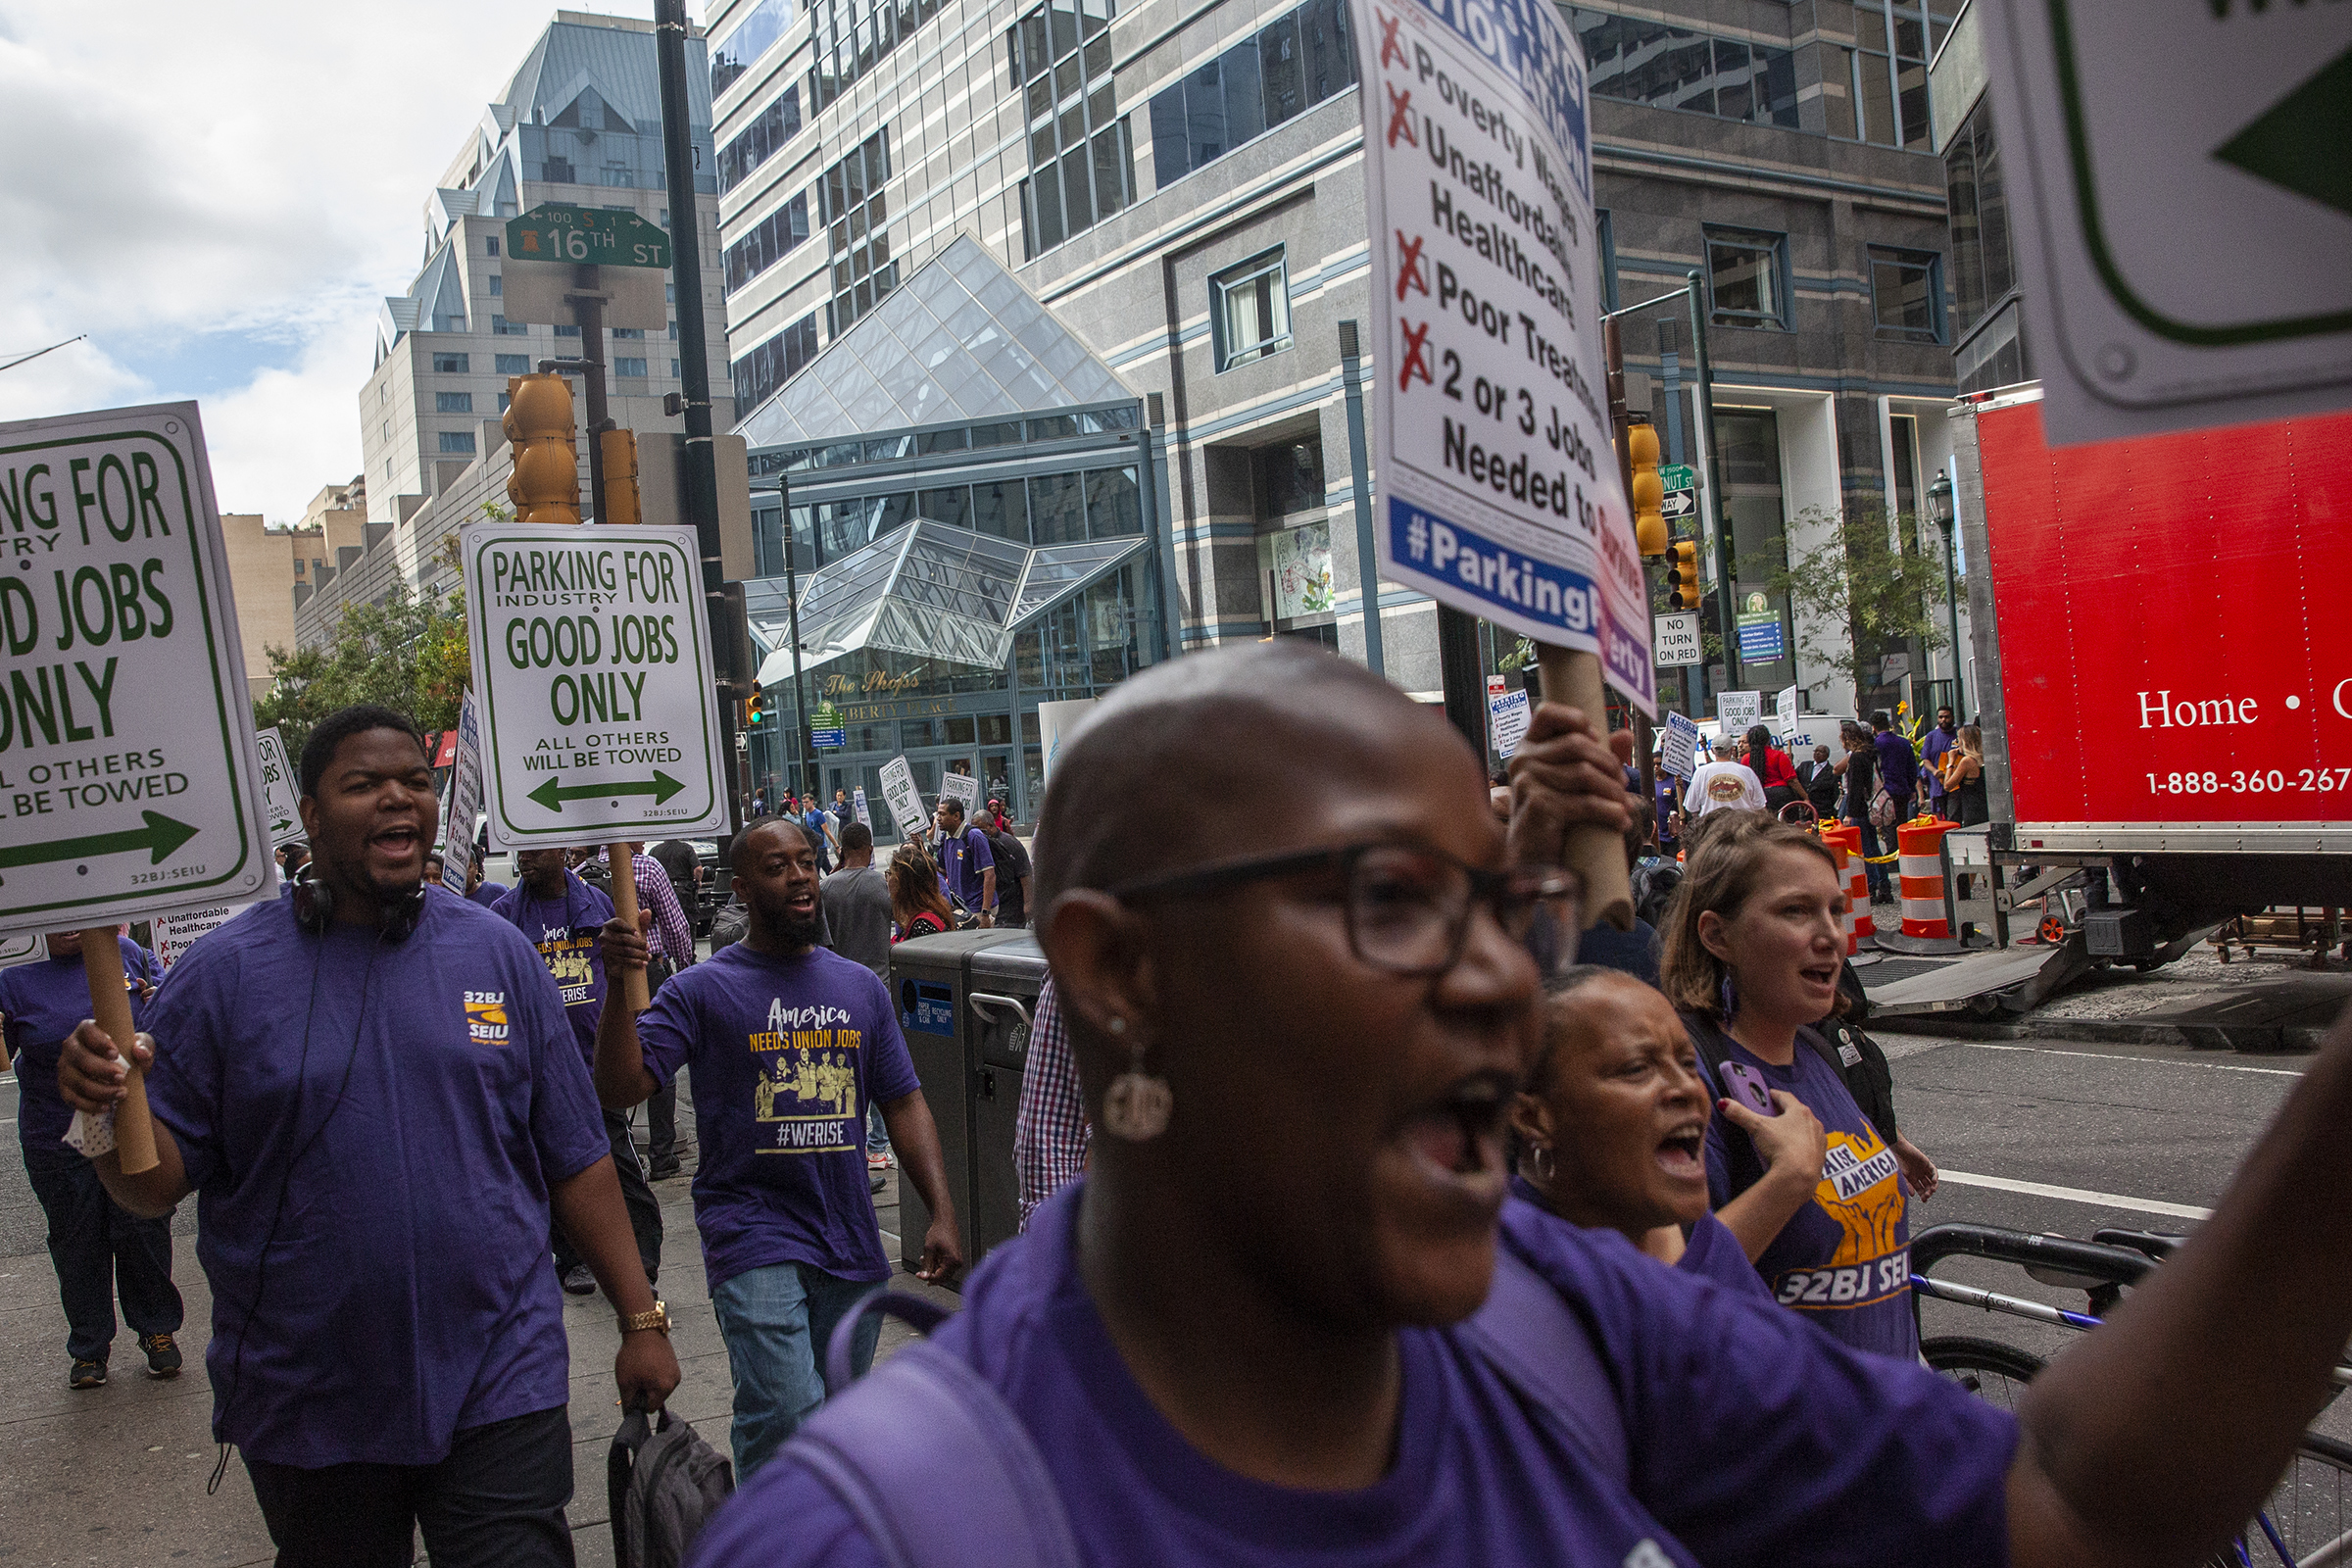 About 50 parking lot attendants and 32BJ SEIU members marched down 16th Street in Center City on Thursday afternoon to raise awareness for the parking lot workers´ bid to unionize.